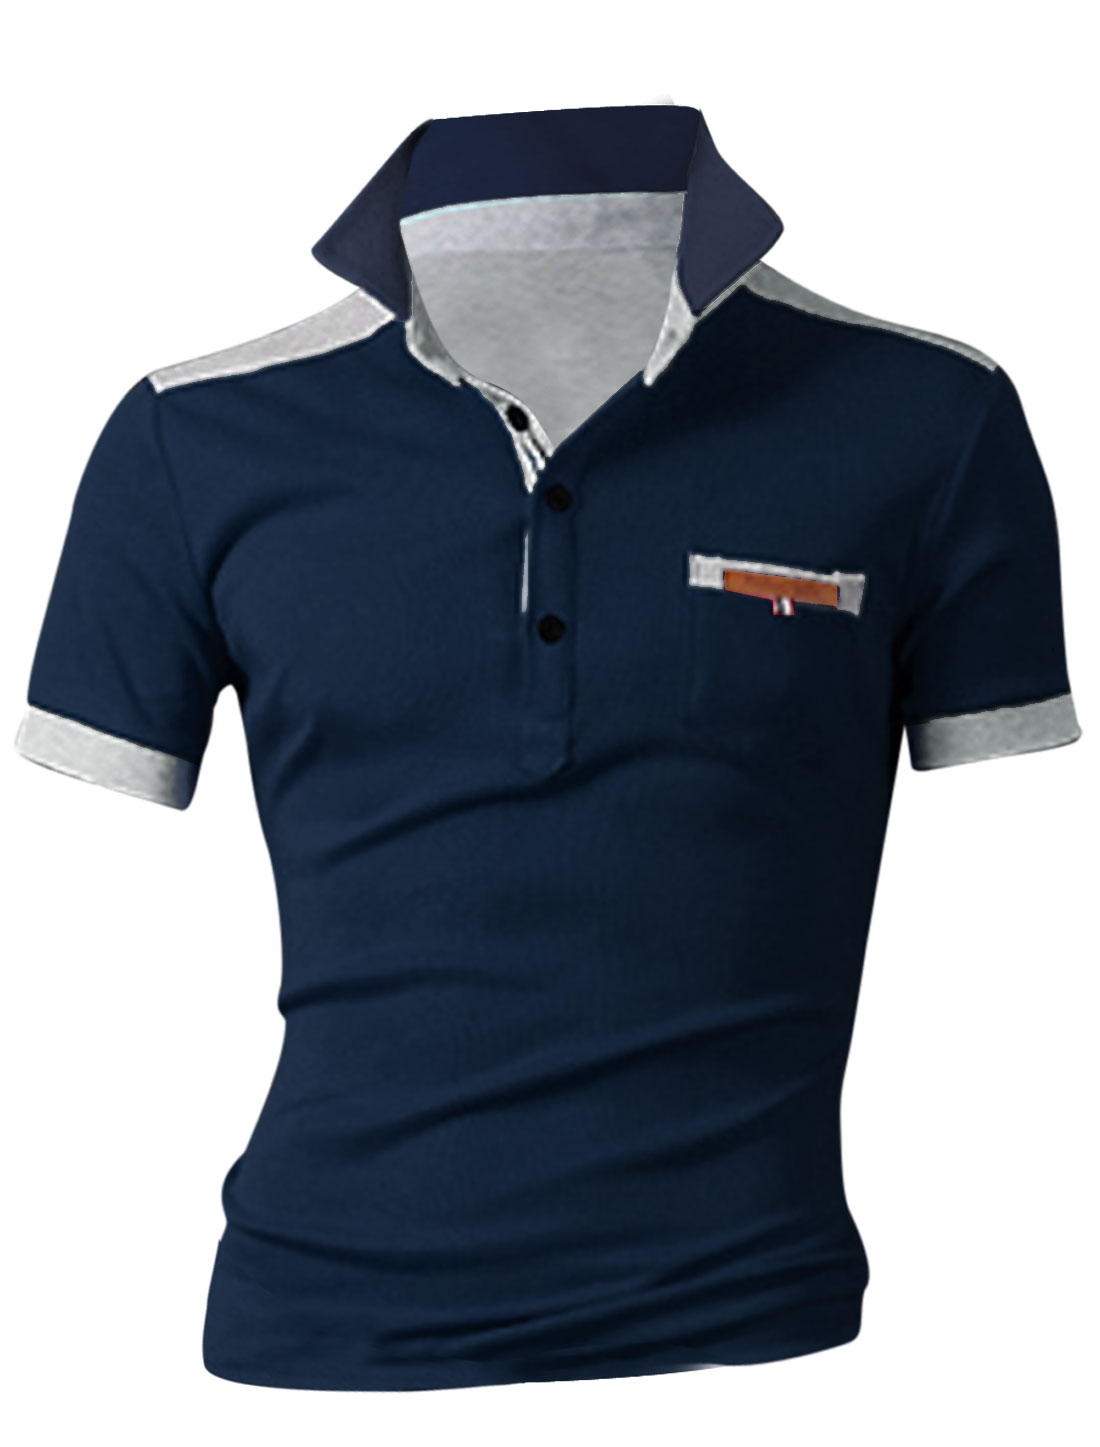 Men Convertible Collar Ribbed Cuffs Polo Shirt Navy Blue M